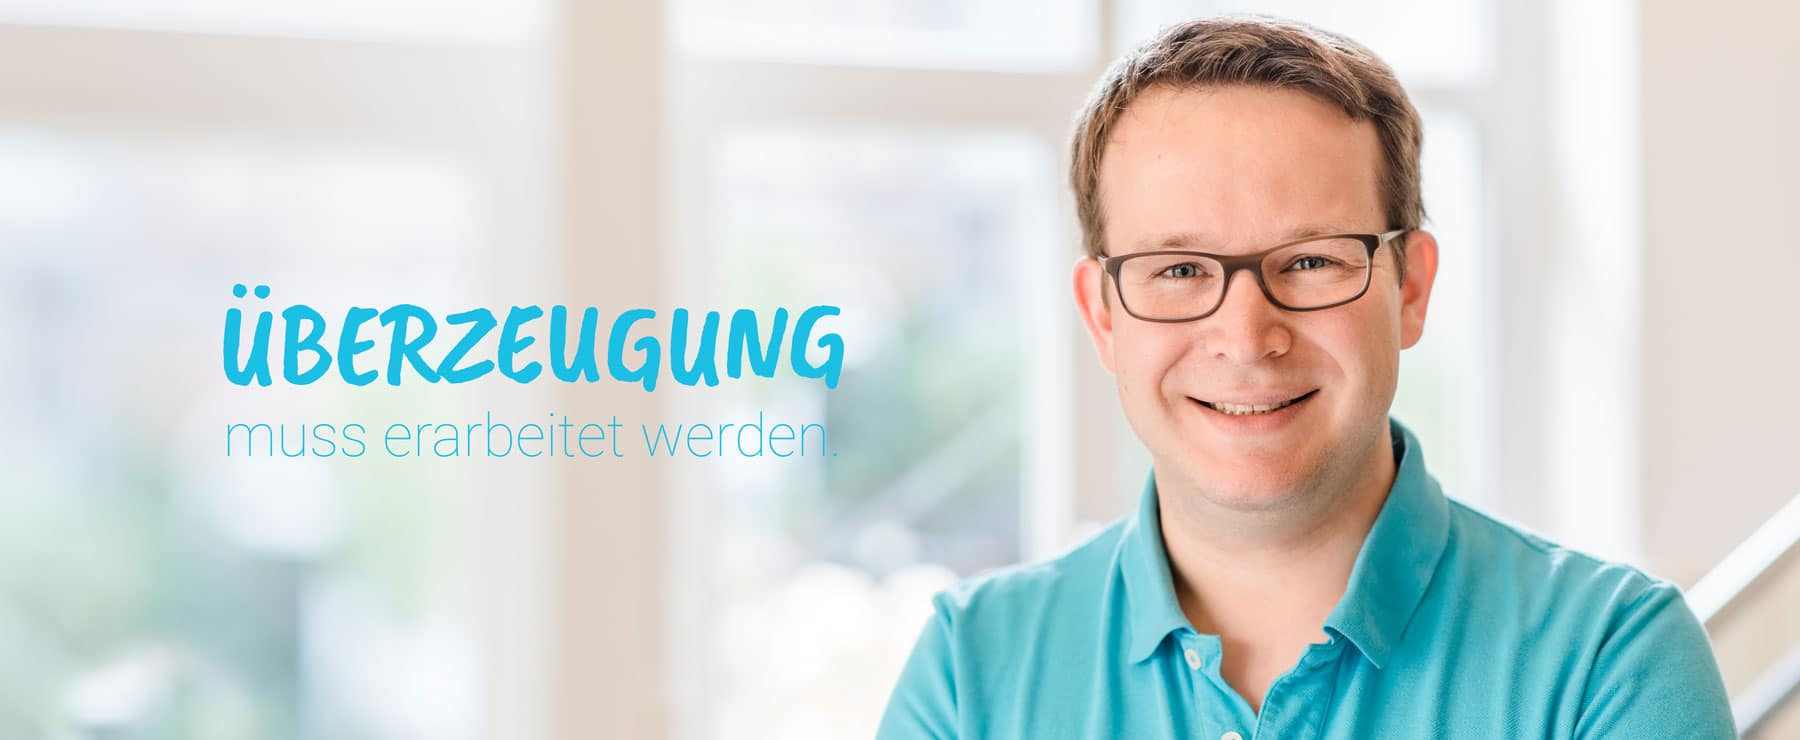 Leif Neugebohrn Onlinemarketing